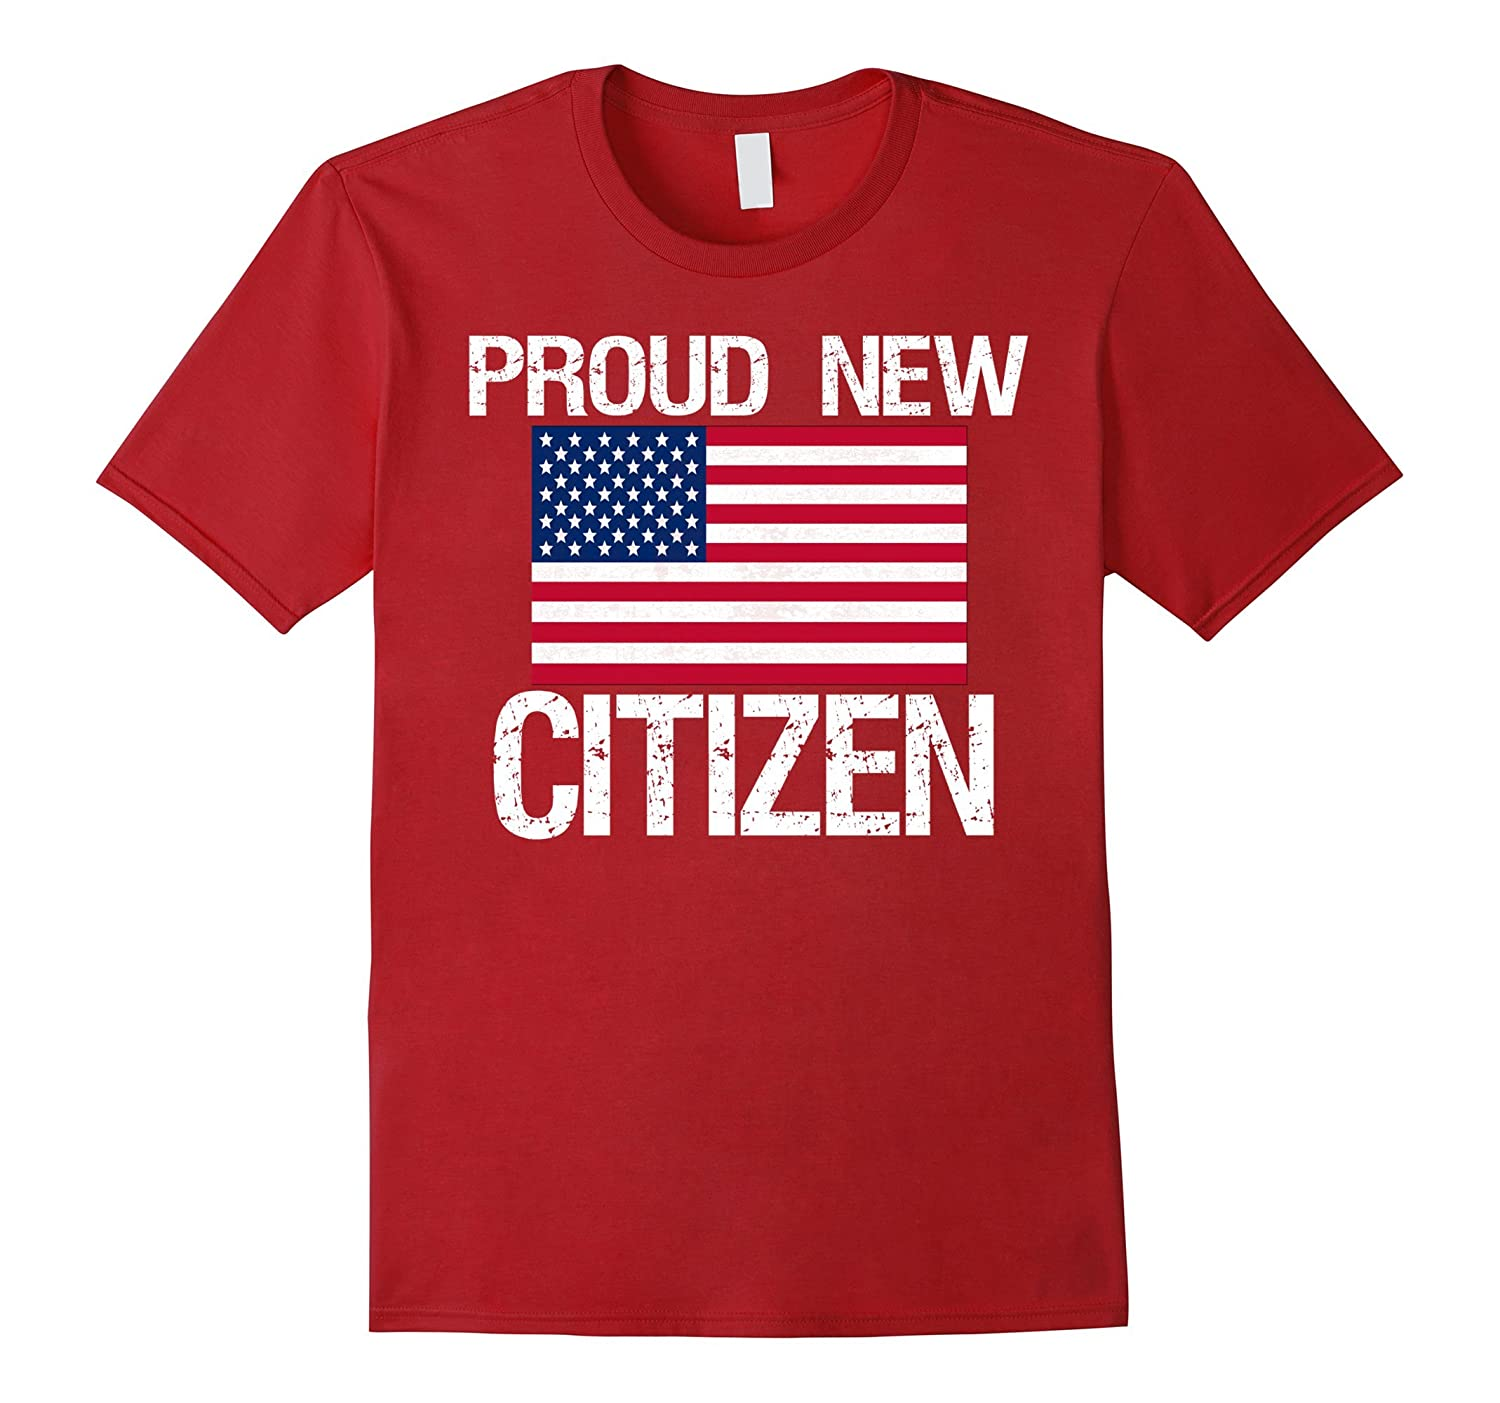 AM New American Citizen: Proud New American Citizen T-Shirt-BN